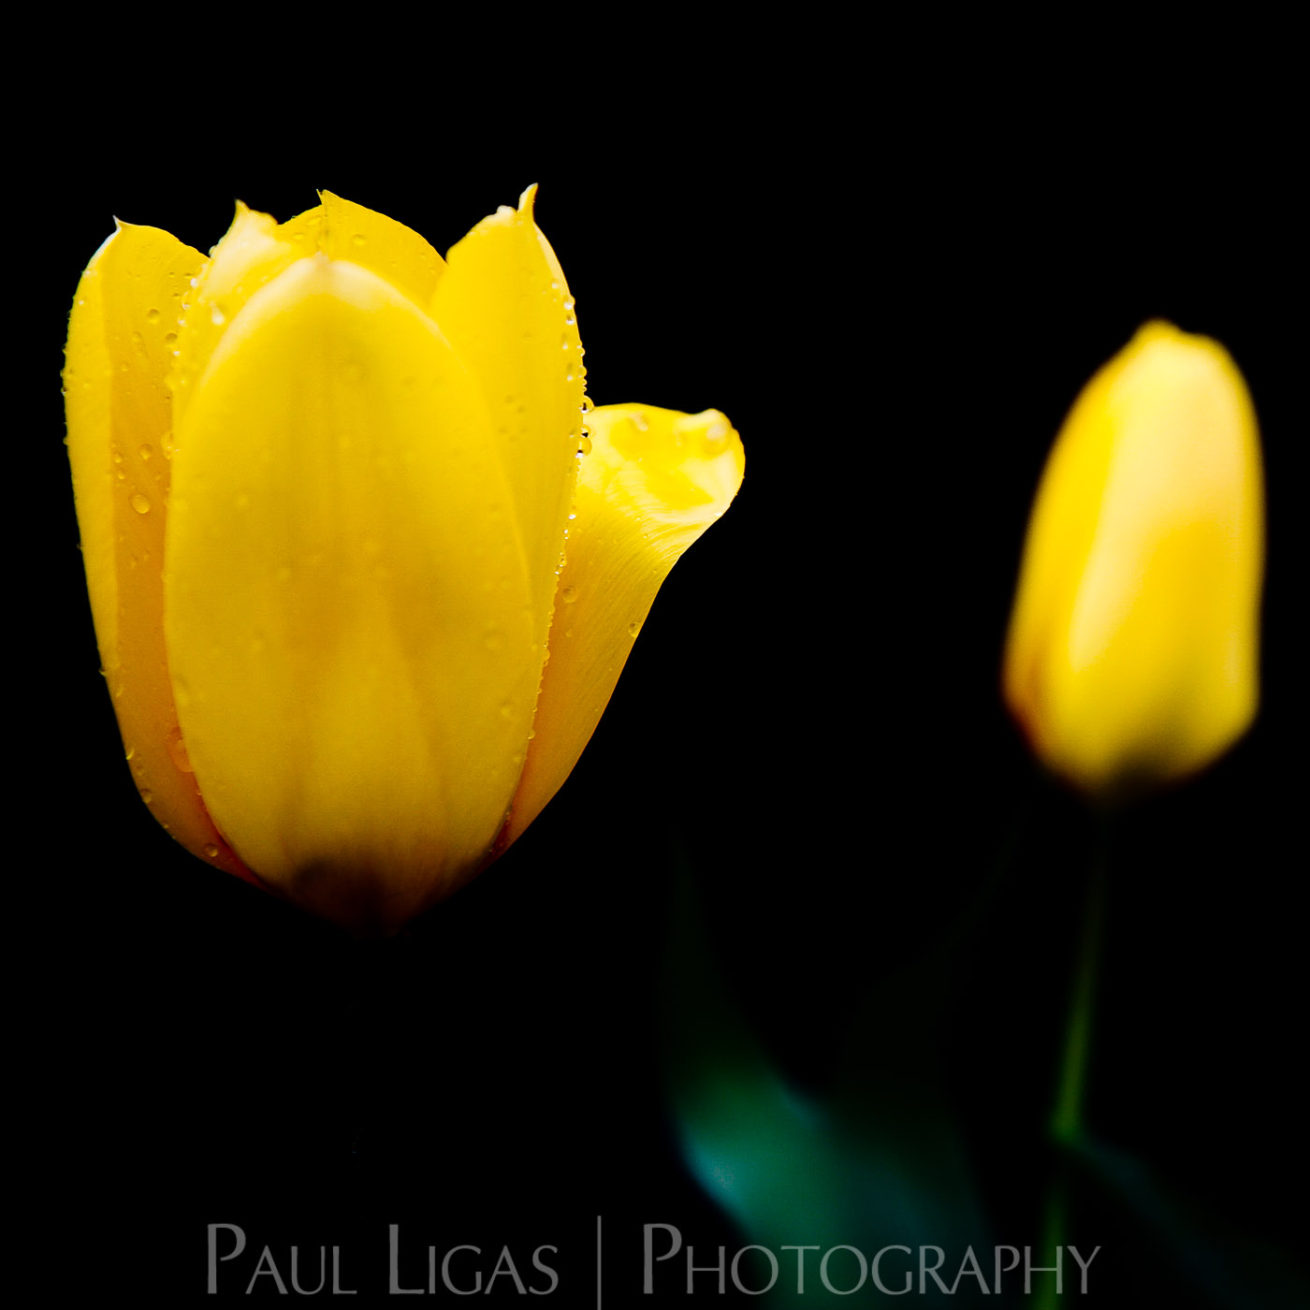 Mill House Farm product photographer hereford photography flowers 0493